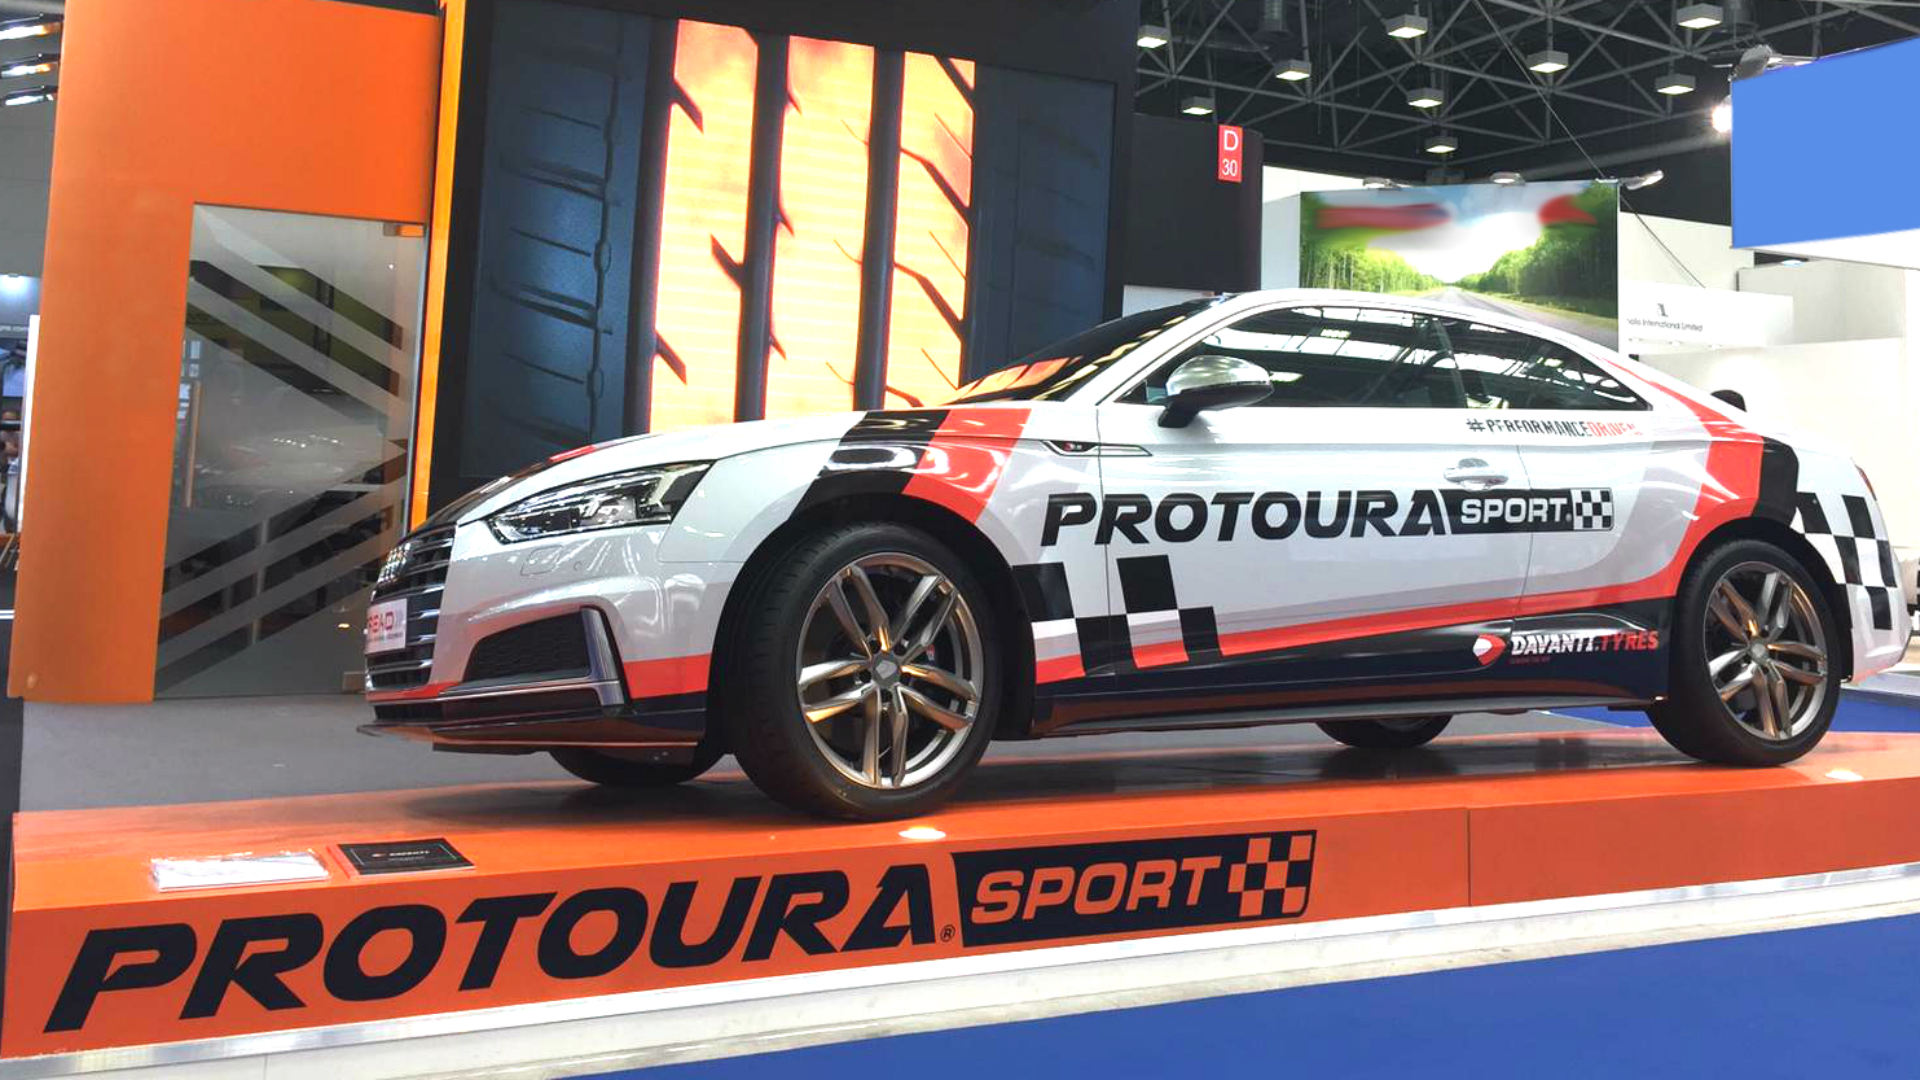 New generation of Davanti Tyres to star at Automechanika Dubai